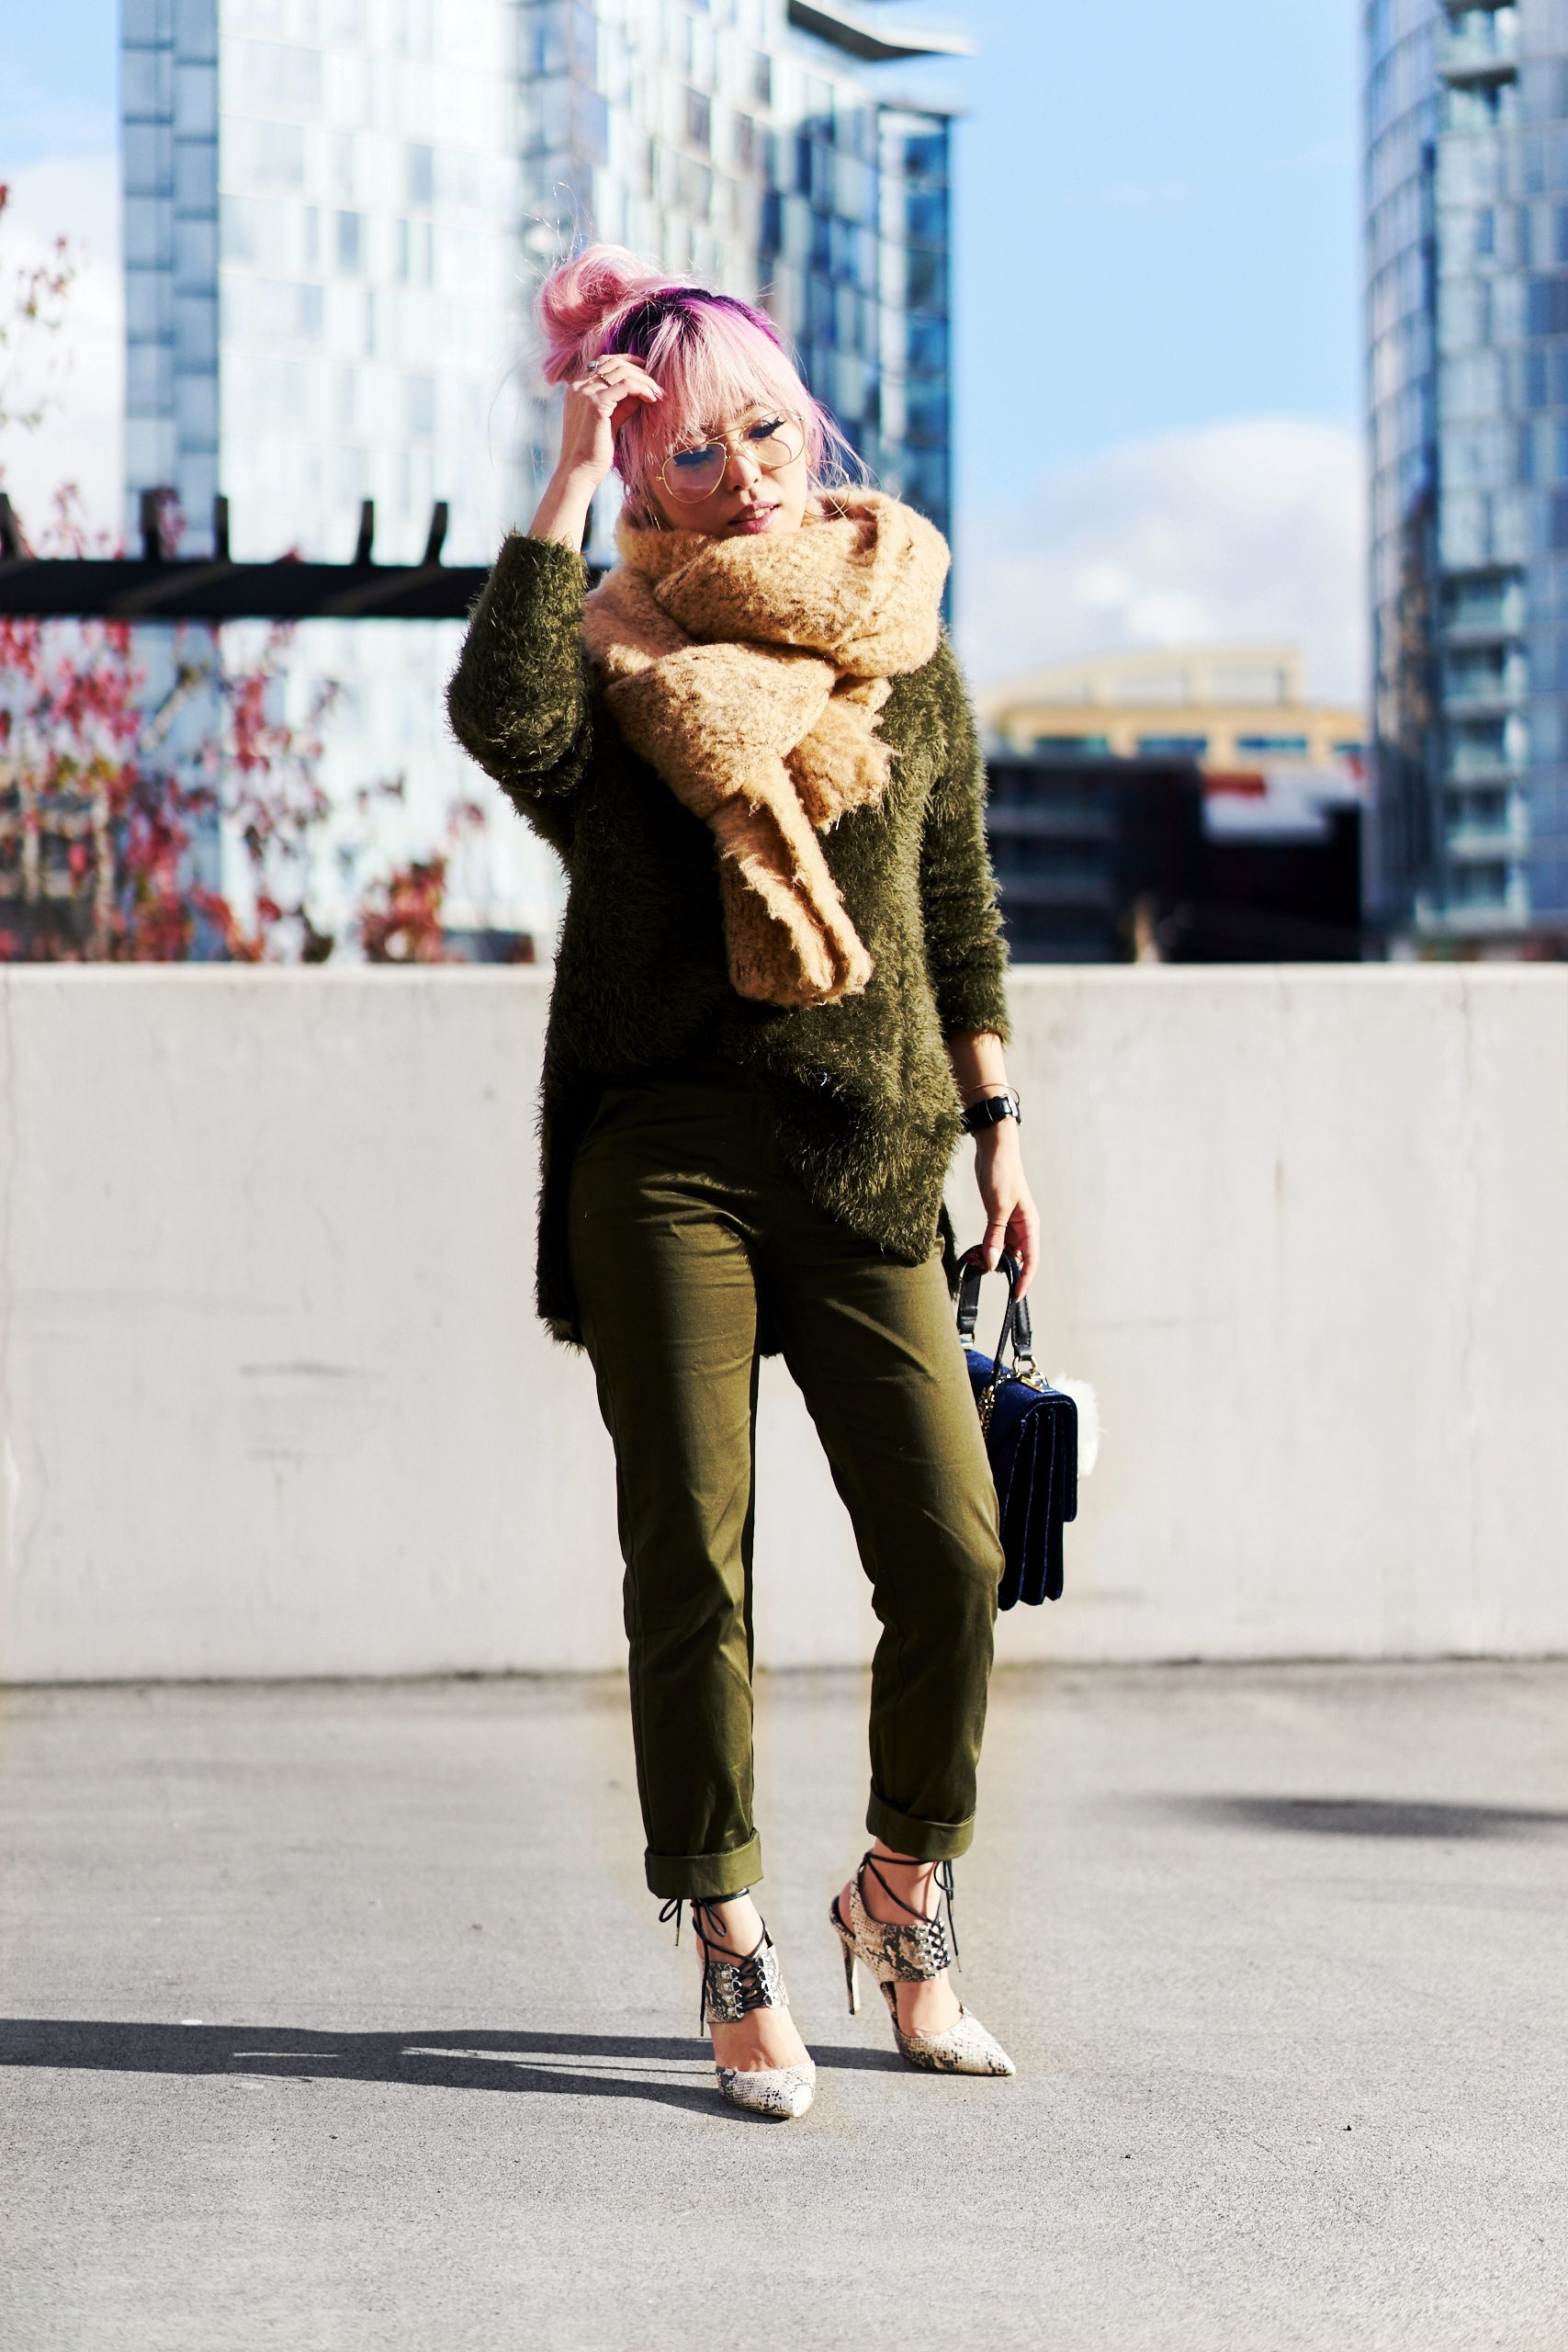 ASOS Oversized Scarf-H&M olive chunky sweater-H&M cropped trousers-ASOS python lace-up pumps-ZARA navy velvet bag-mango earrings-Daniel Wellington Watch-Clear Lens aviator-Aika's Love Closet-Seattle Style blogger-japanese-pink hair-colored hair 3